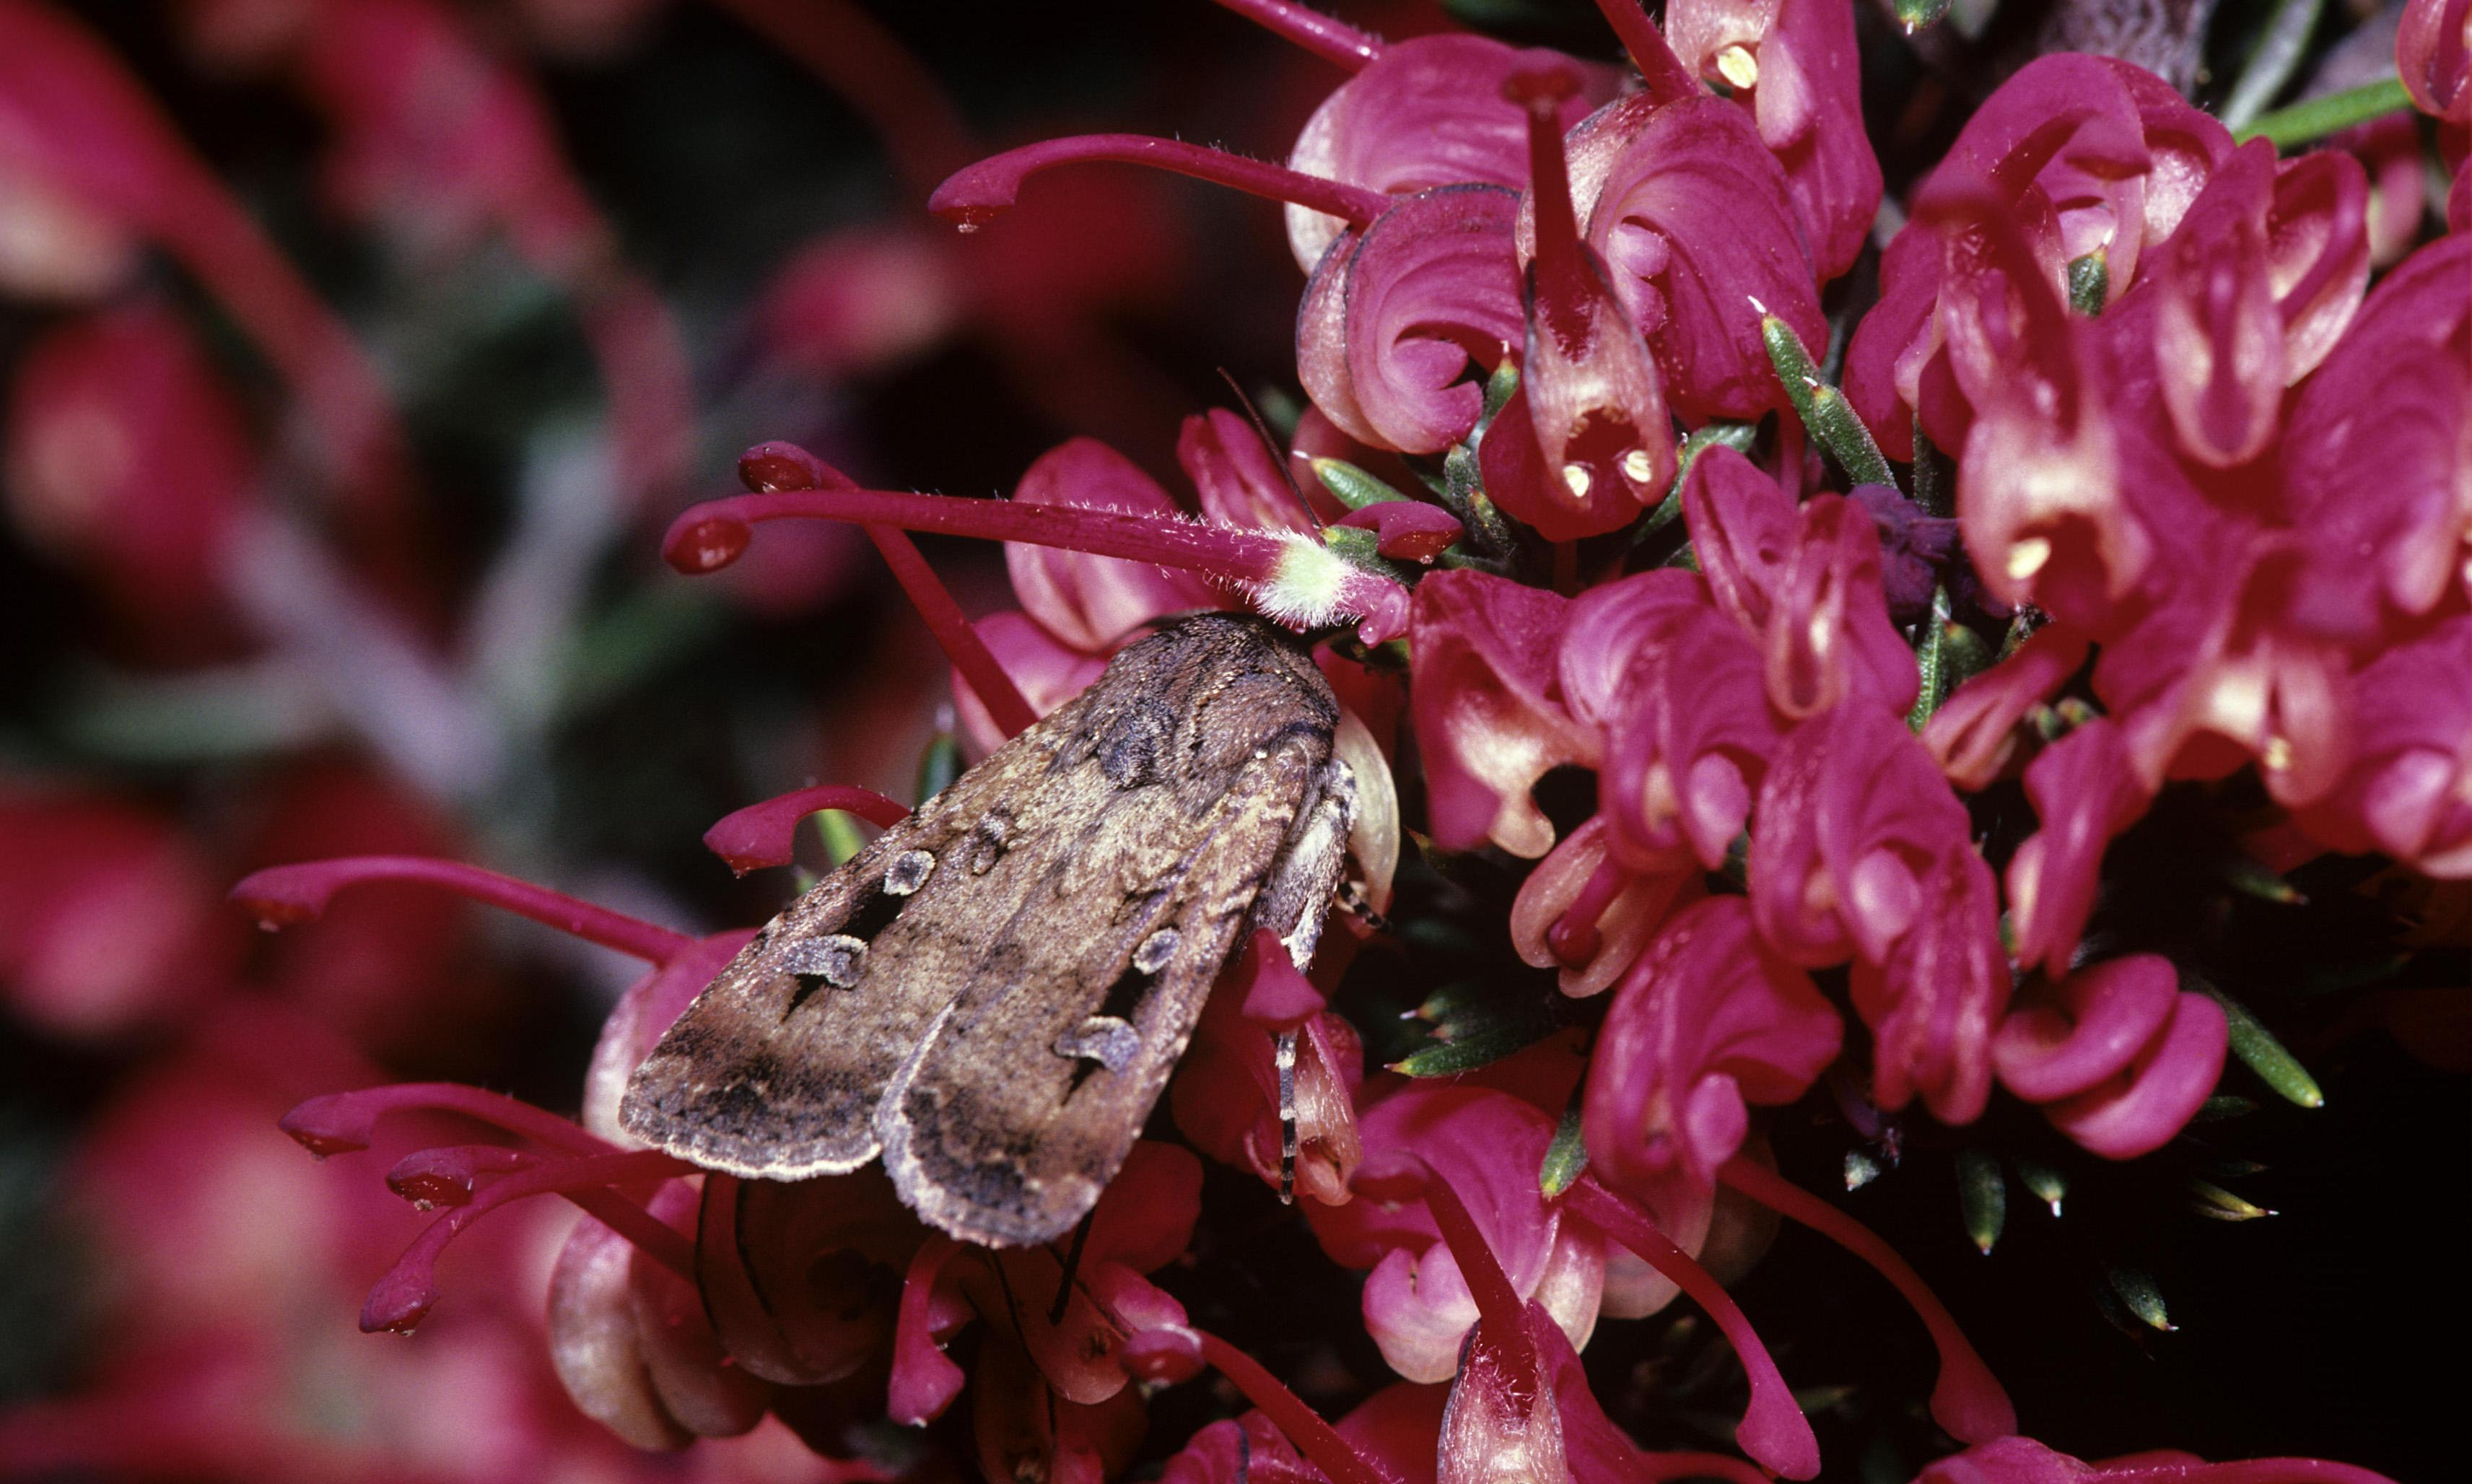 Bogong moth tracker launched in face of 'unprecedented' collapse in numbers